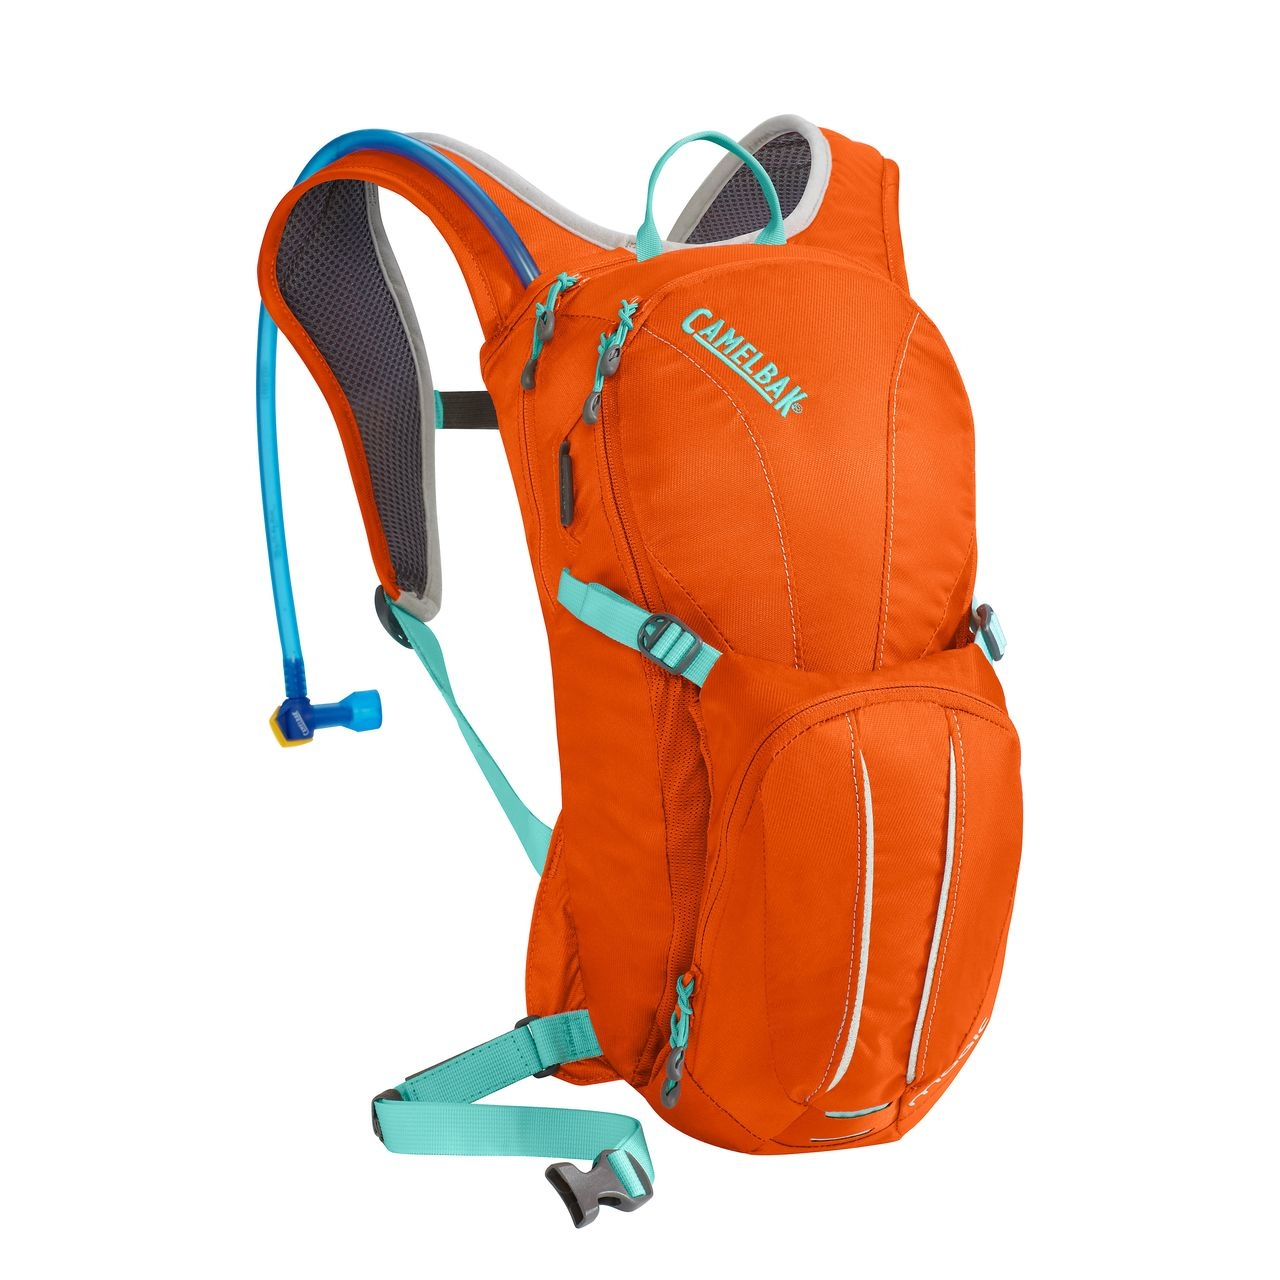 Sac à dos d'hydratation CamelBak Magic 2 L spécifique femme Orange